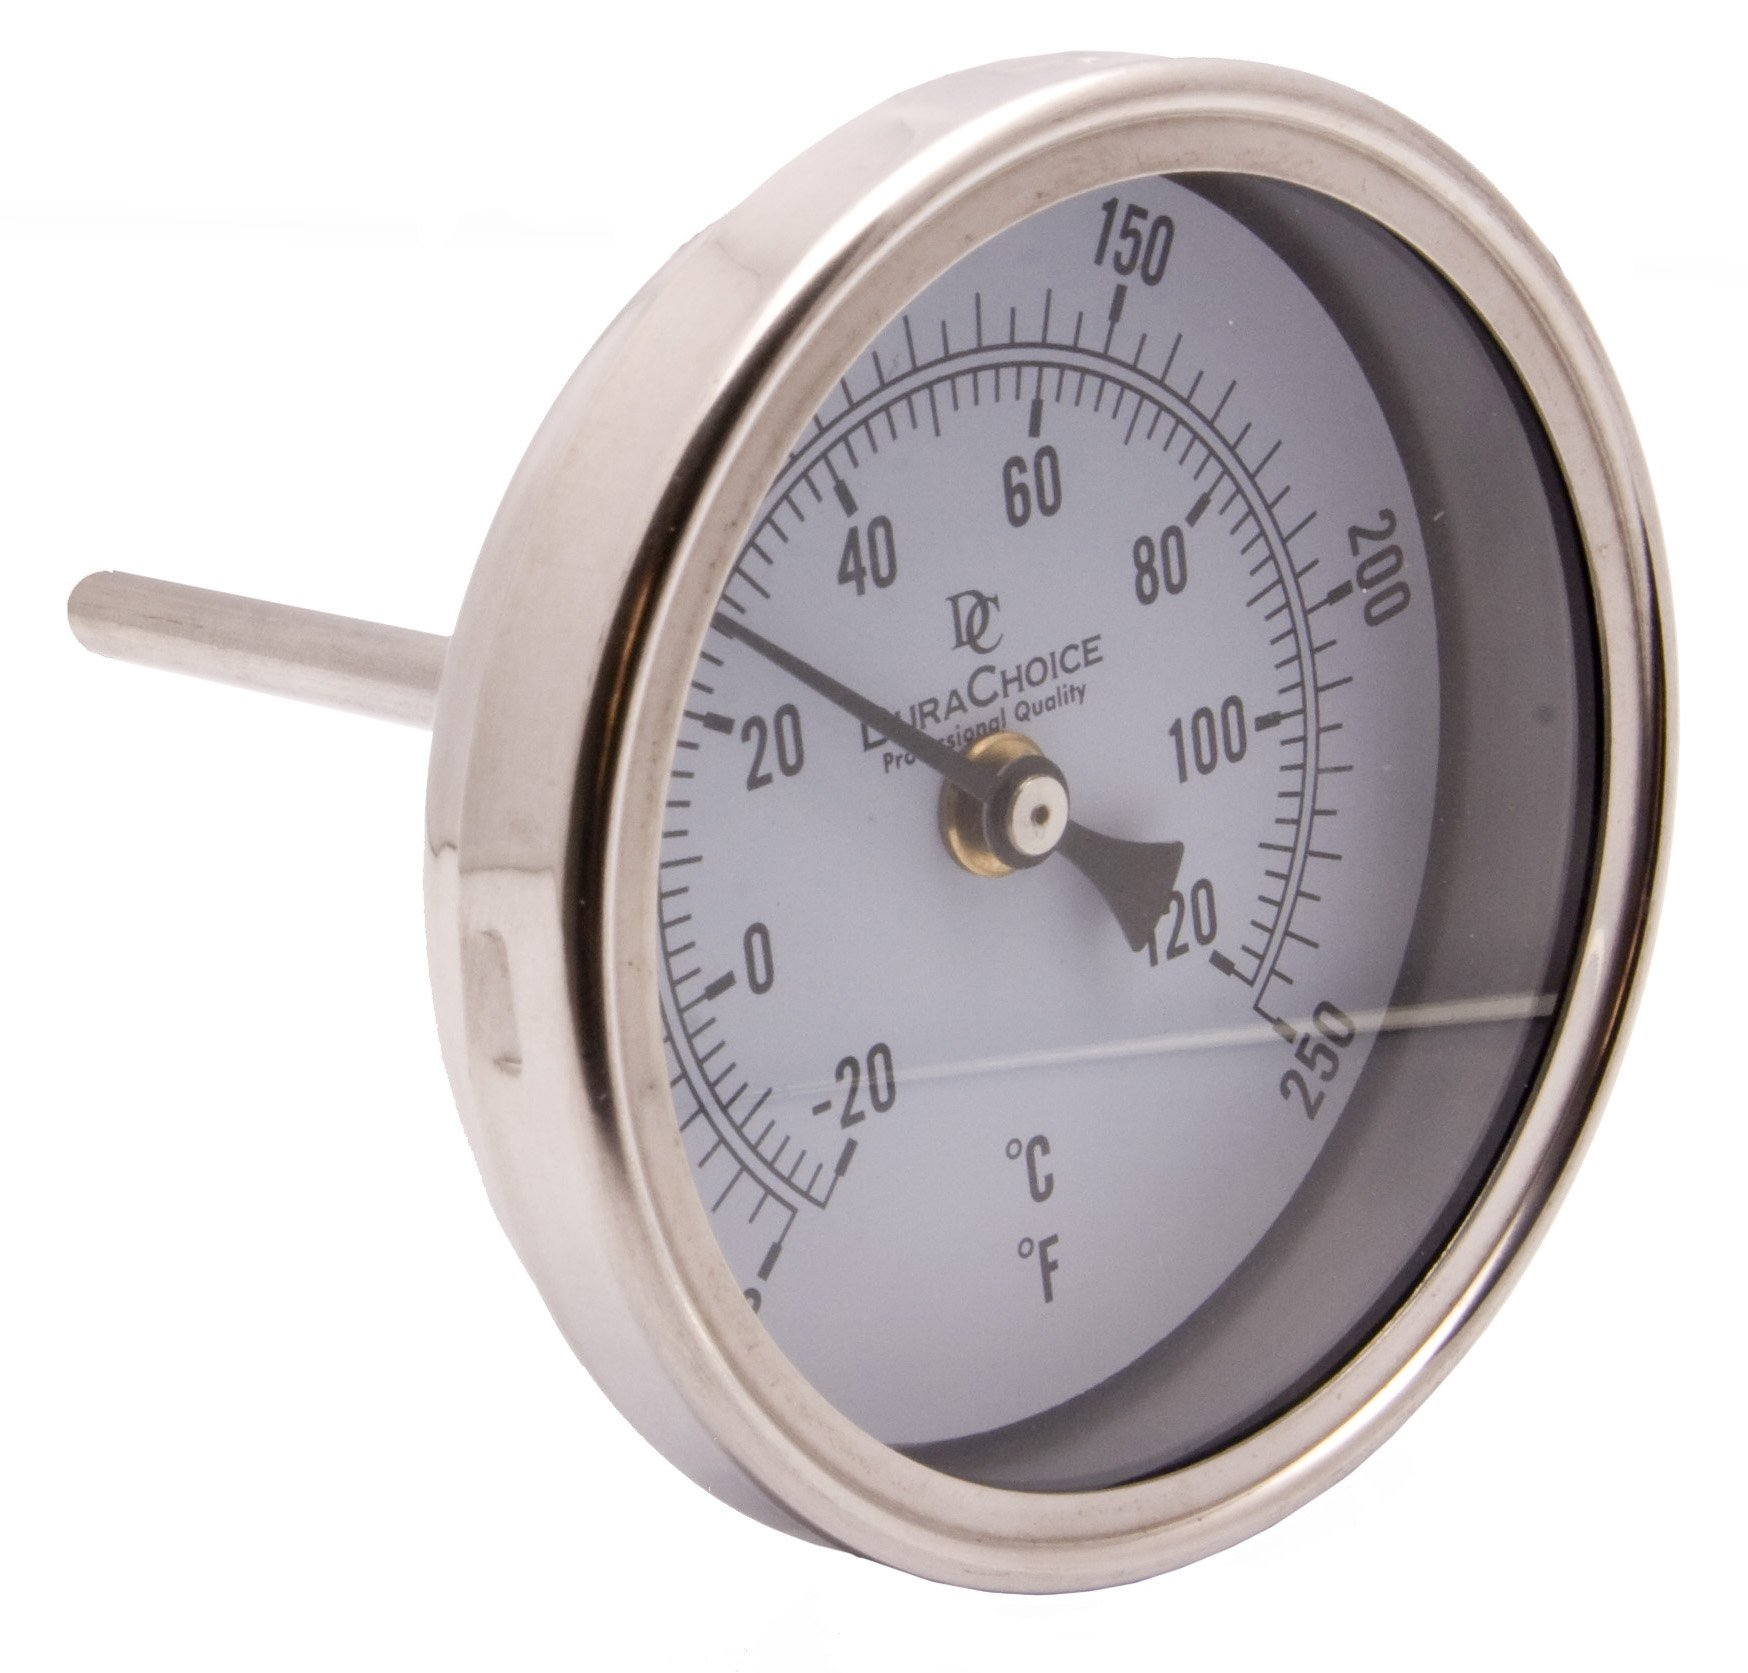 Industrial Bimetal Thermometer 5'' Face x 4'' Stem, 0-250 w/Calibration Dial